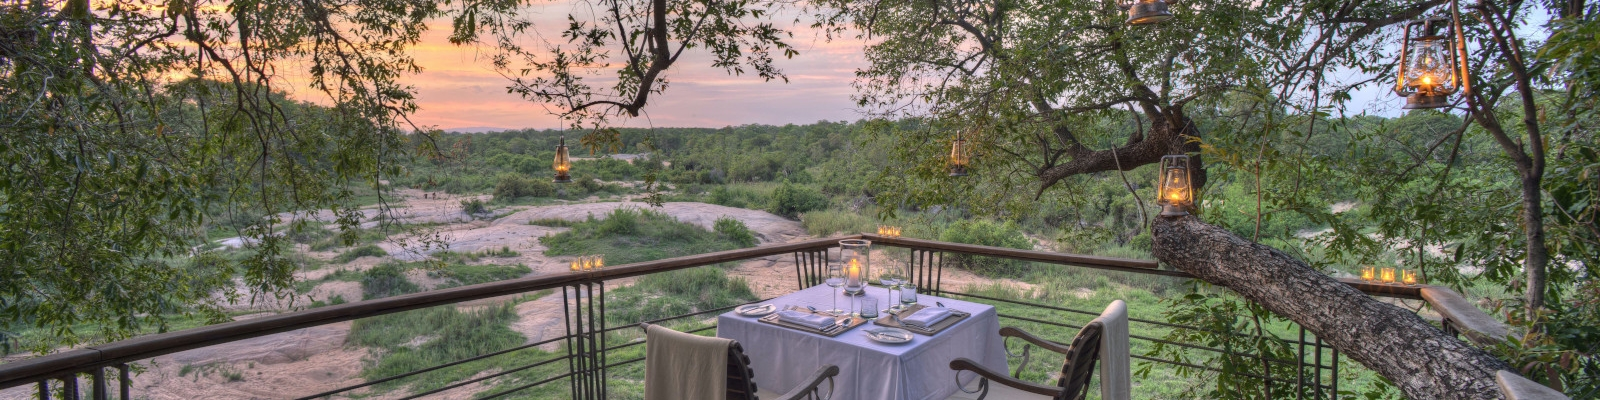 South African Safari Lodge Honeymoon Special